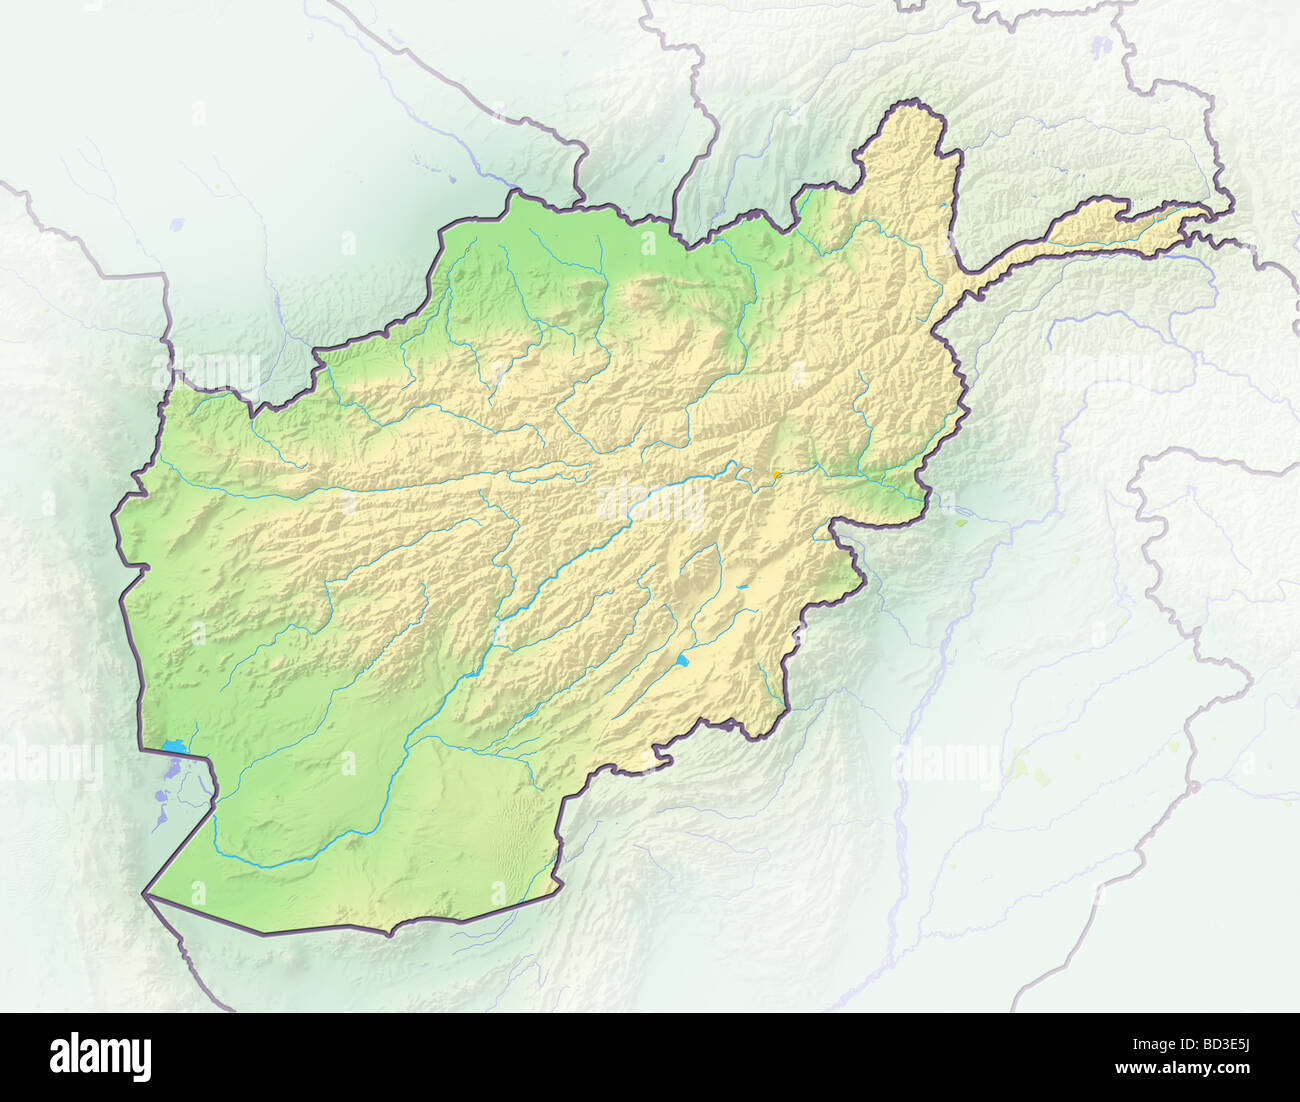 Afghanistan Map Stock Photos & Afghanistan Map Stock Images - Alamy